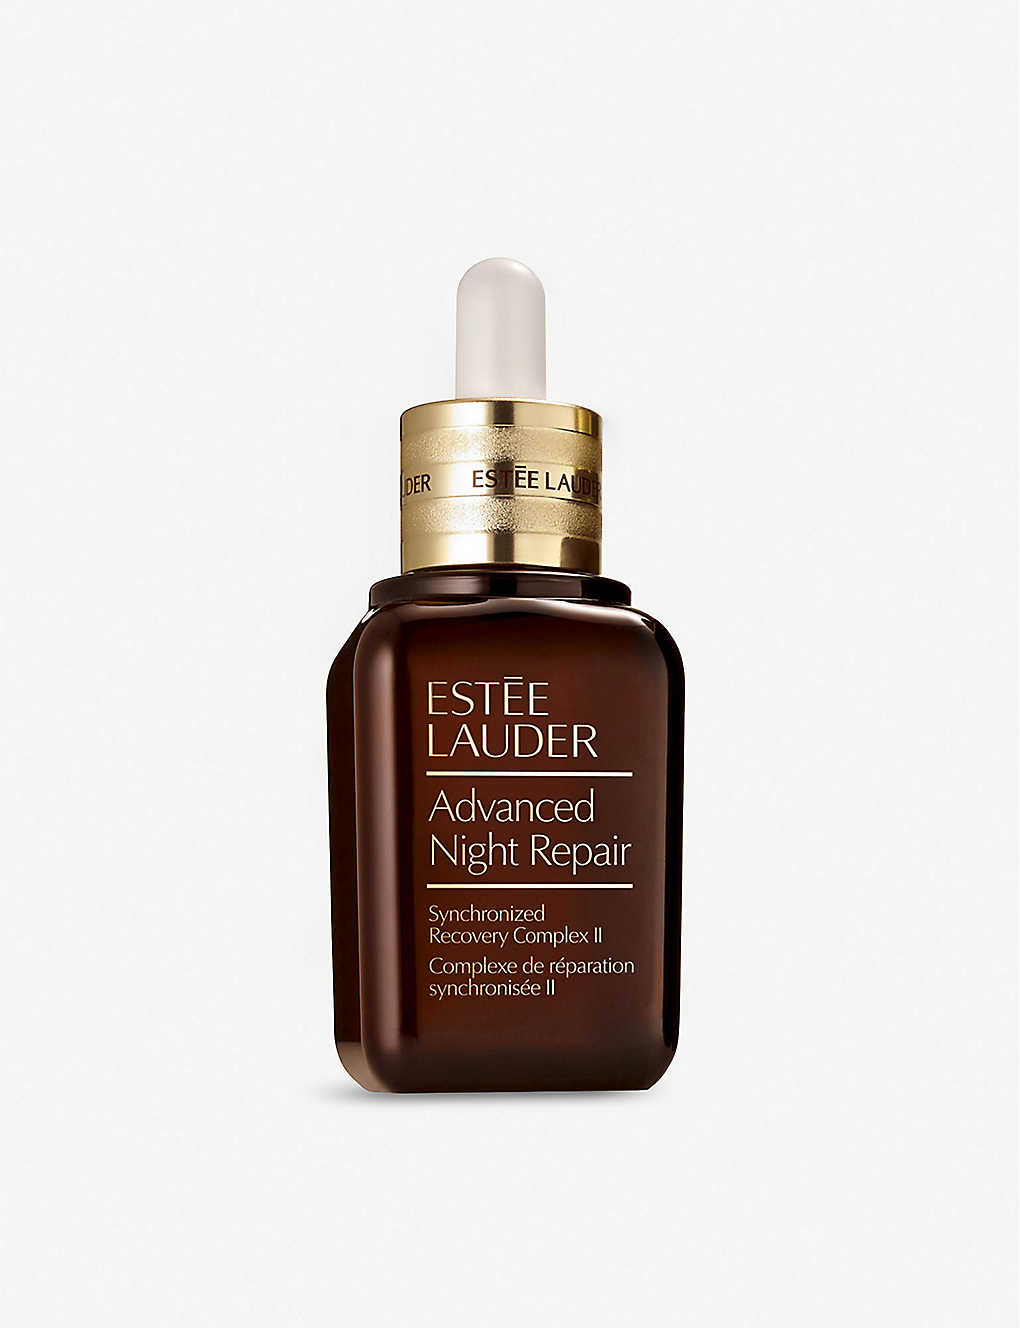 ESTEE LAUDER: Advanced Night Repair Synchronized Recovery Complex II 50ml